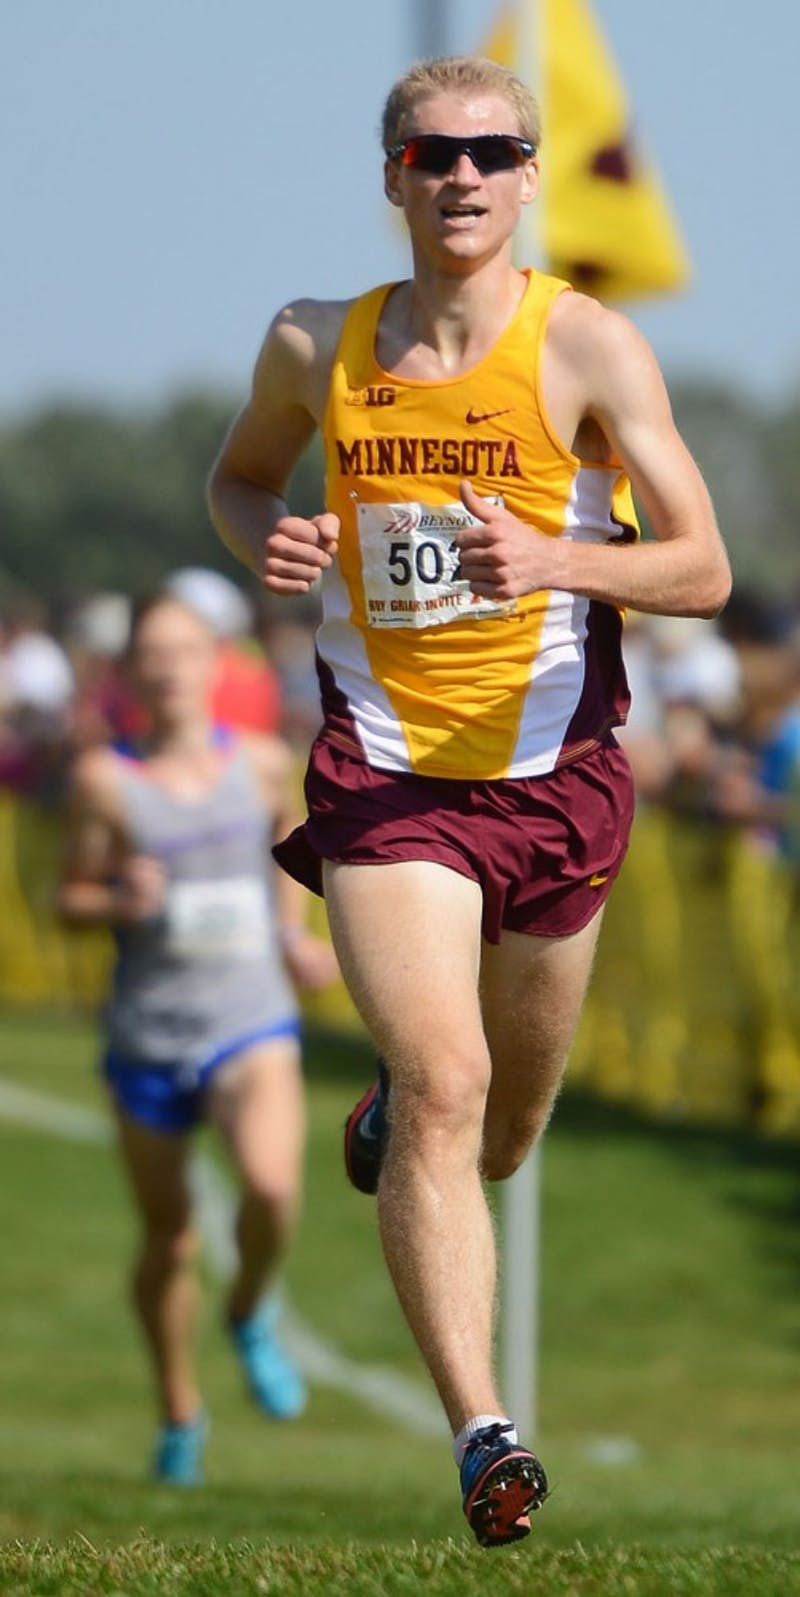 Junior Aaron Bartnik runs the final stretch of the Division 1 Men's race at the Roy Griak Cross Country Invitational at the Les Bolstad Golf Course on Saturday, Sept. 27, 2014.